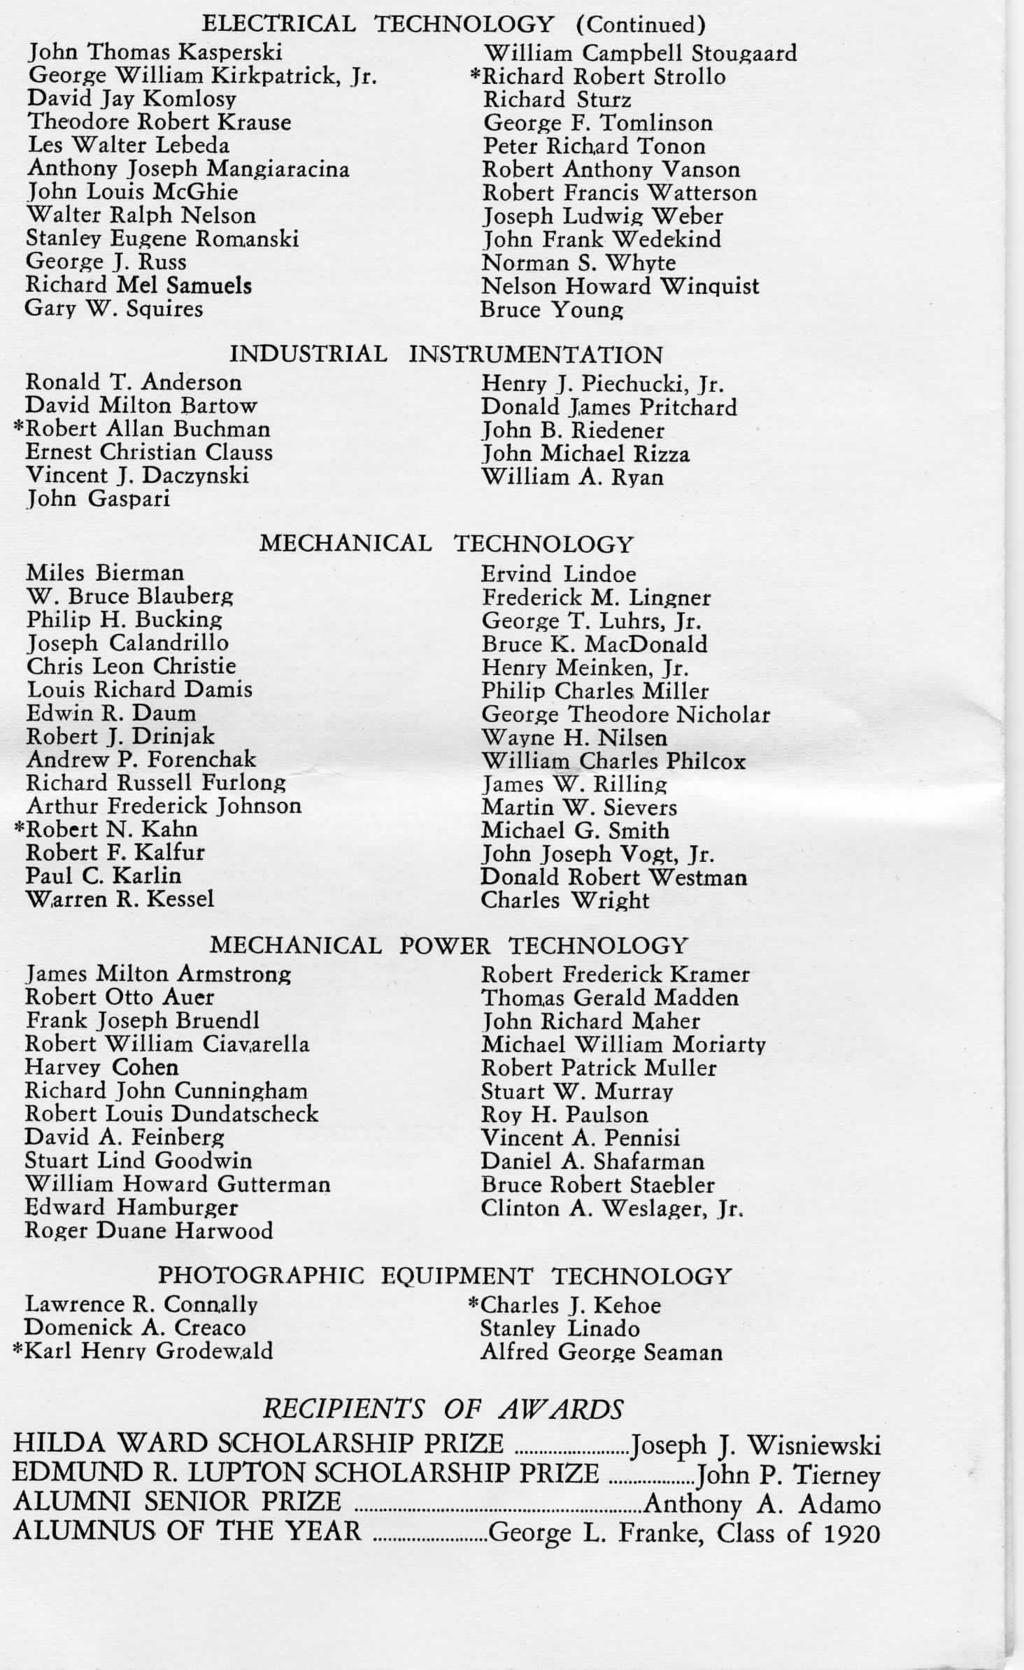 ELECTRICAL TECHNOLOGY (Continued) John Thomas Kasperski George William Kirkpatrick, Jr.